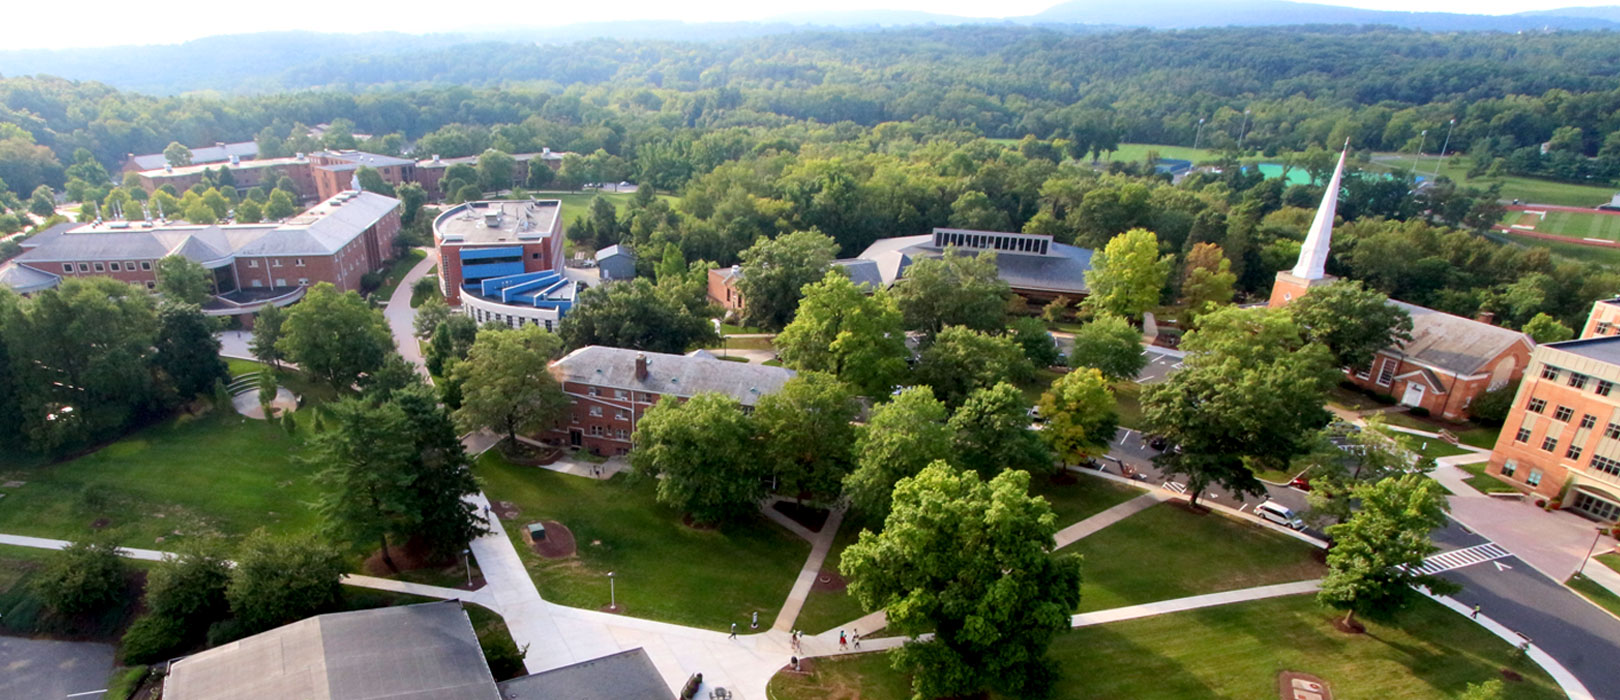 Campus photography from above